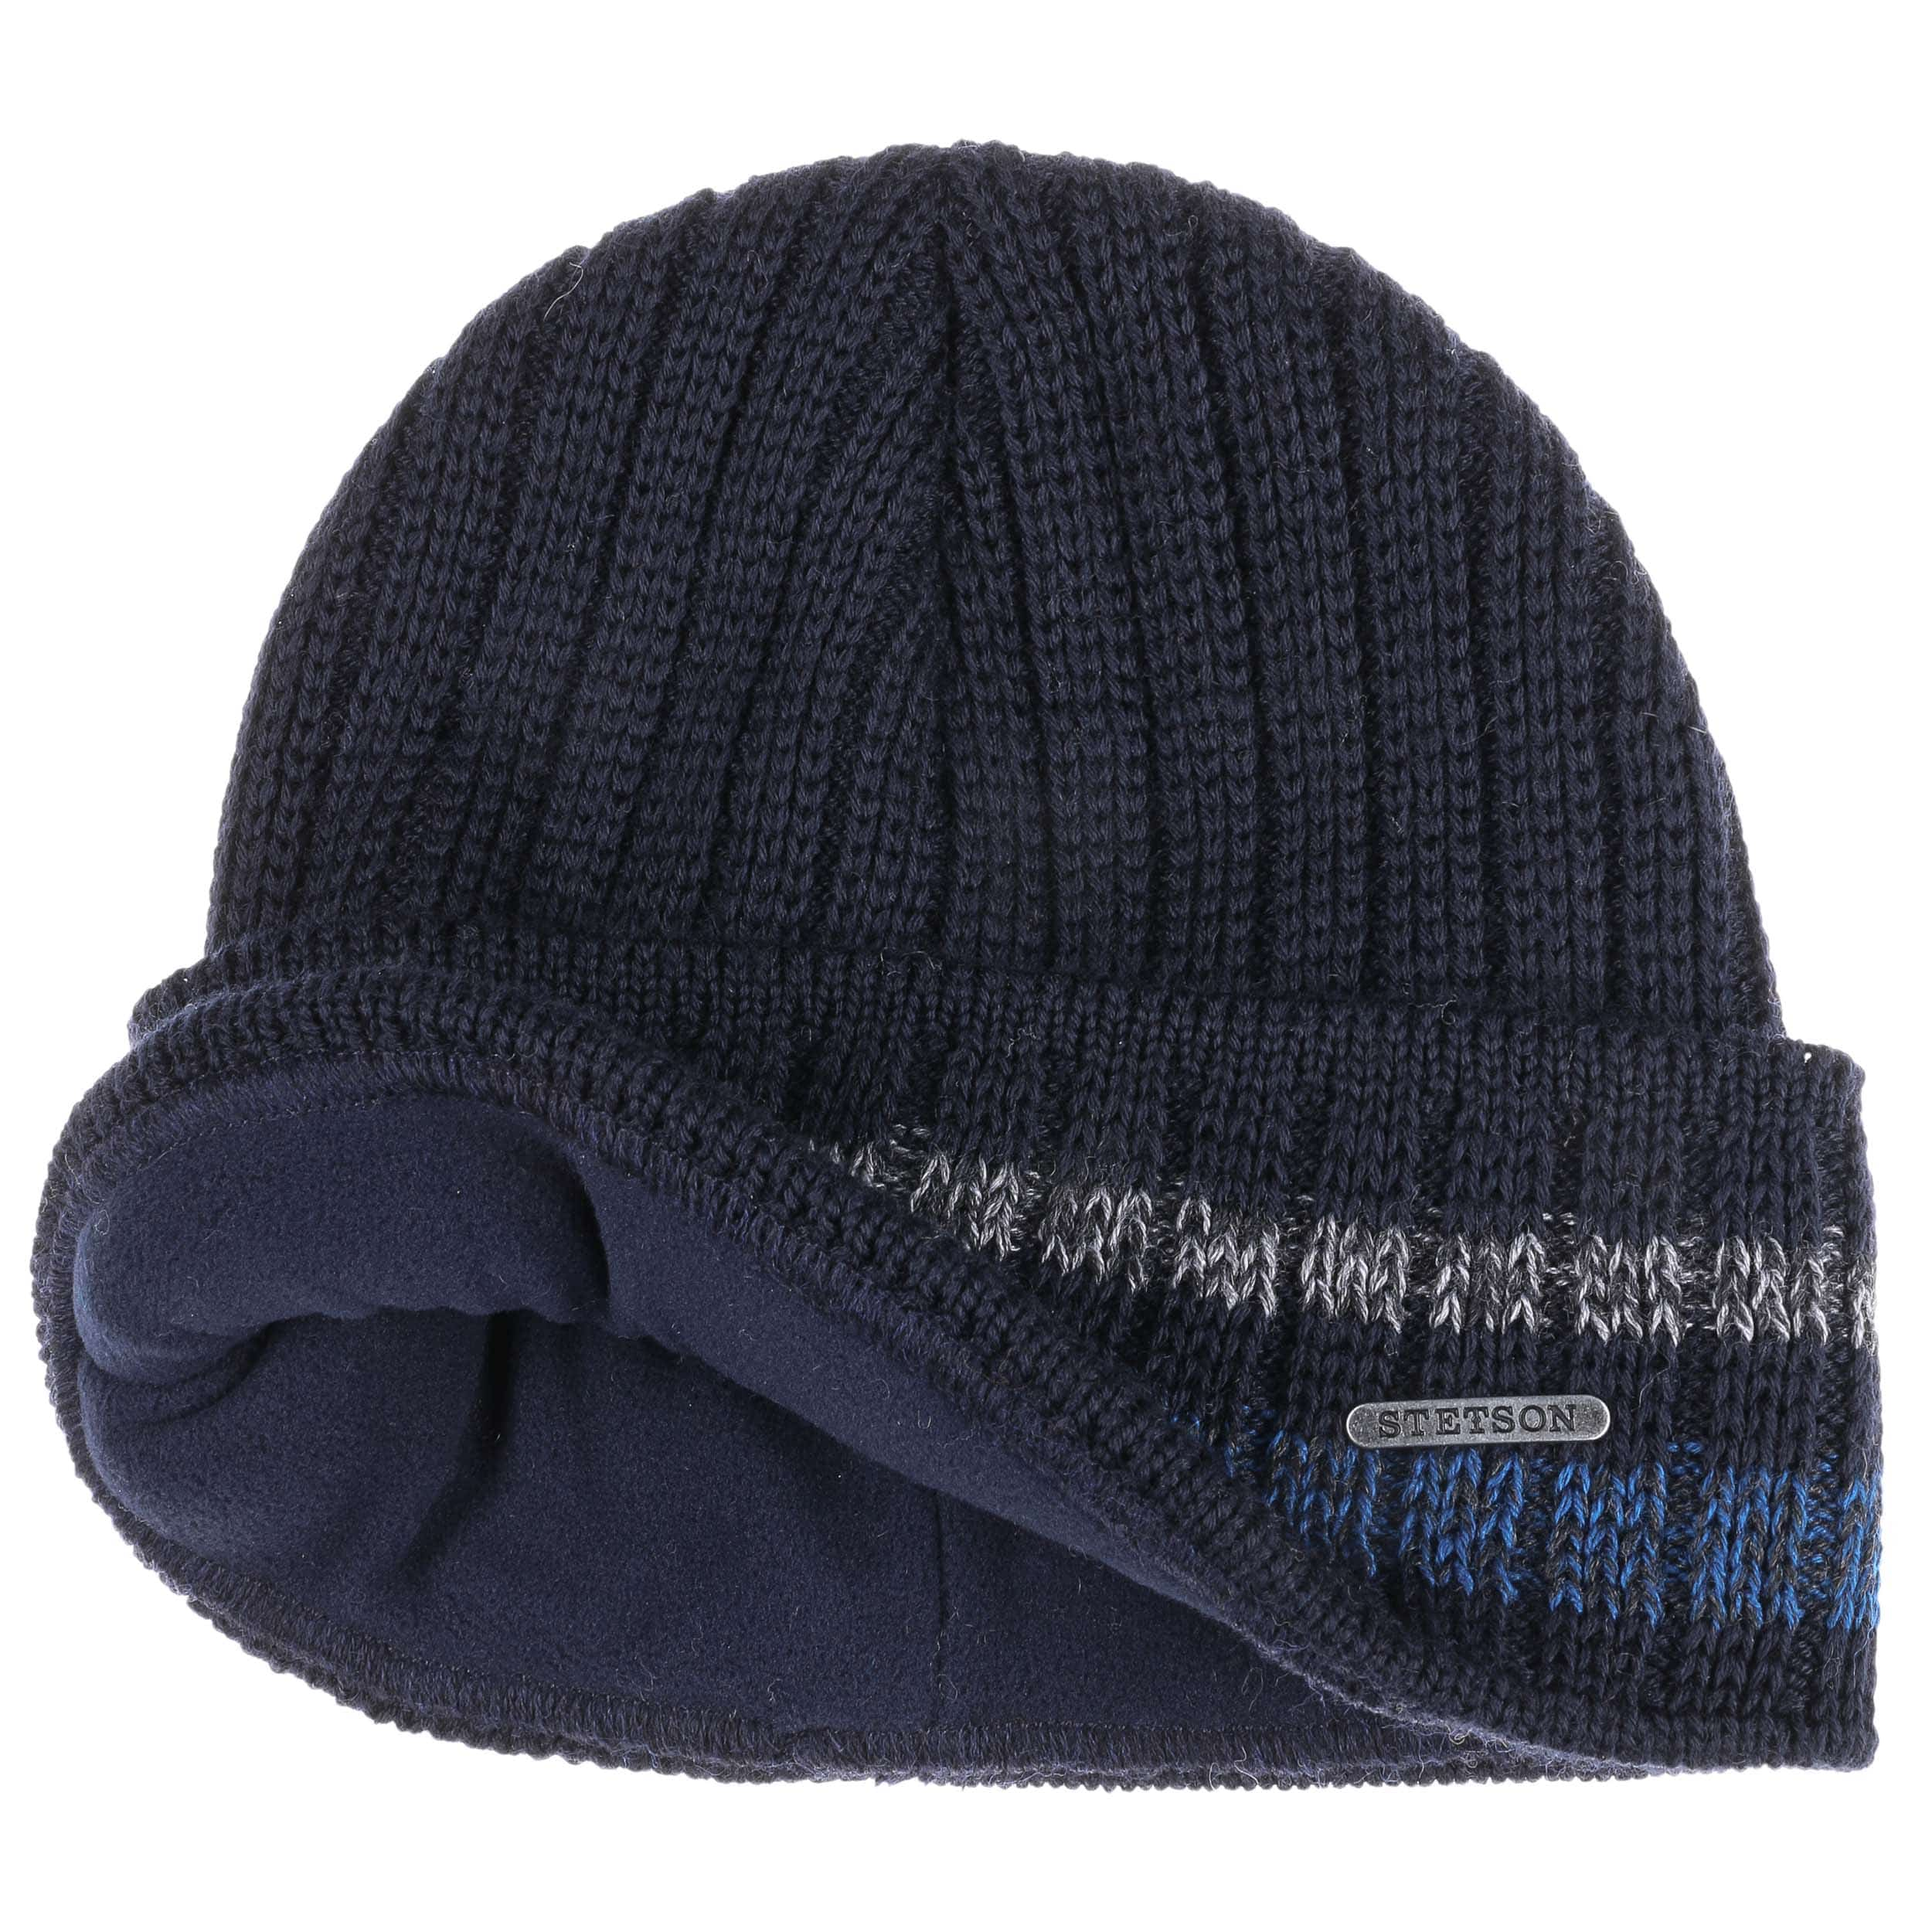 66889029afa Striped Cuff Wool Beanie. by Stetson